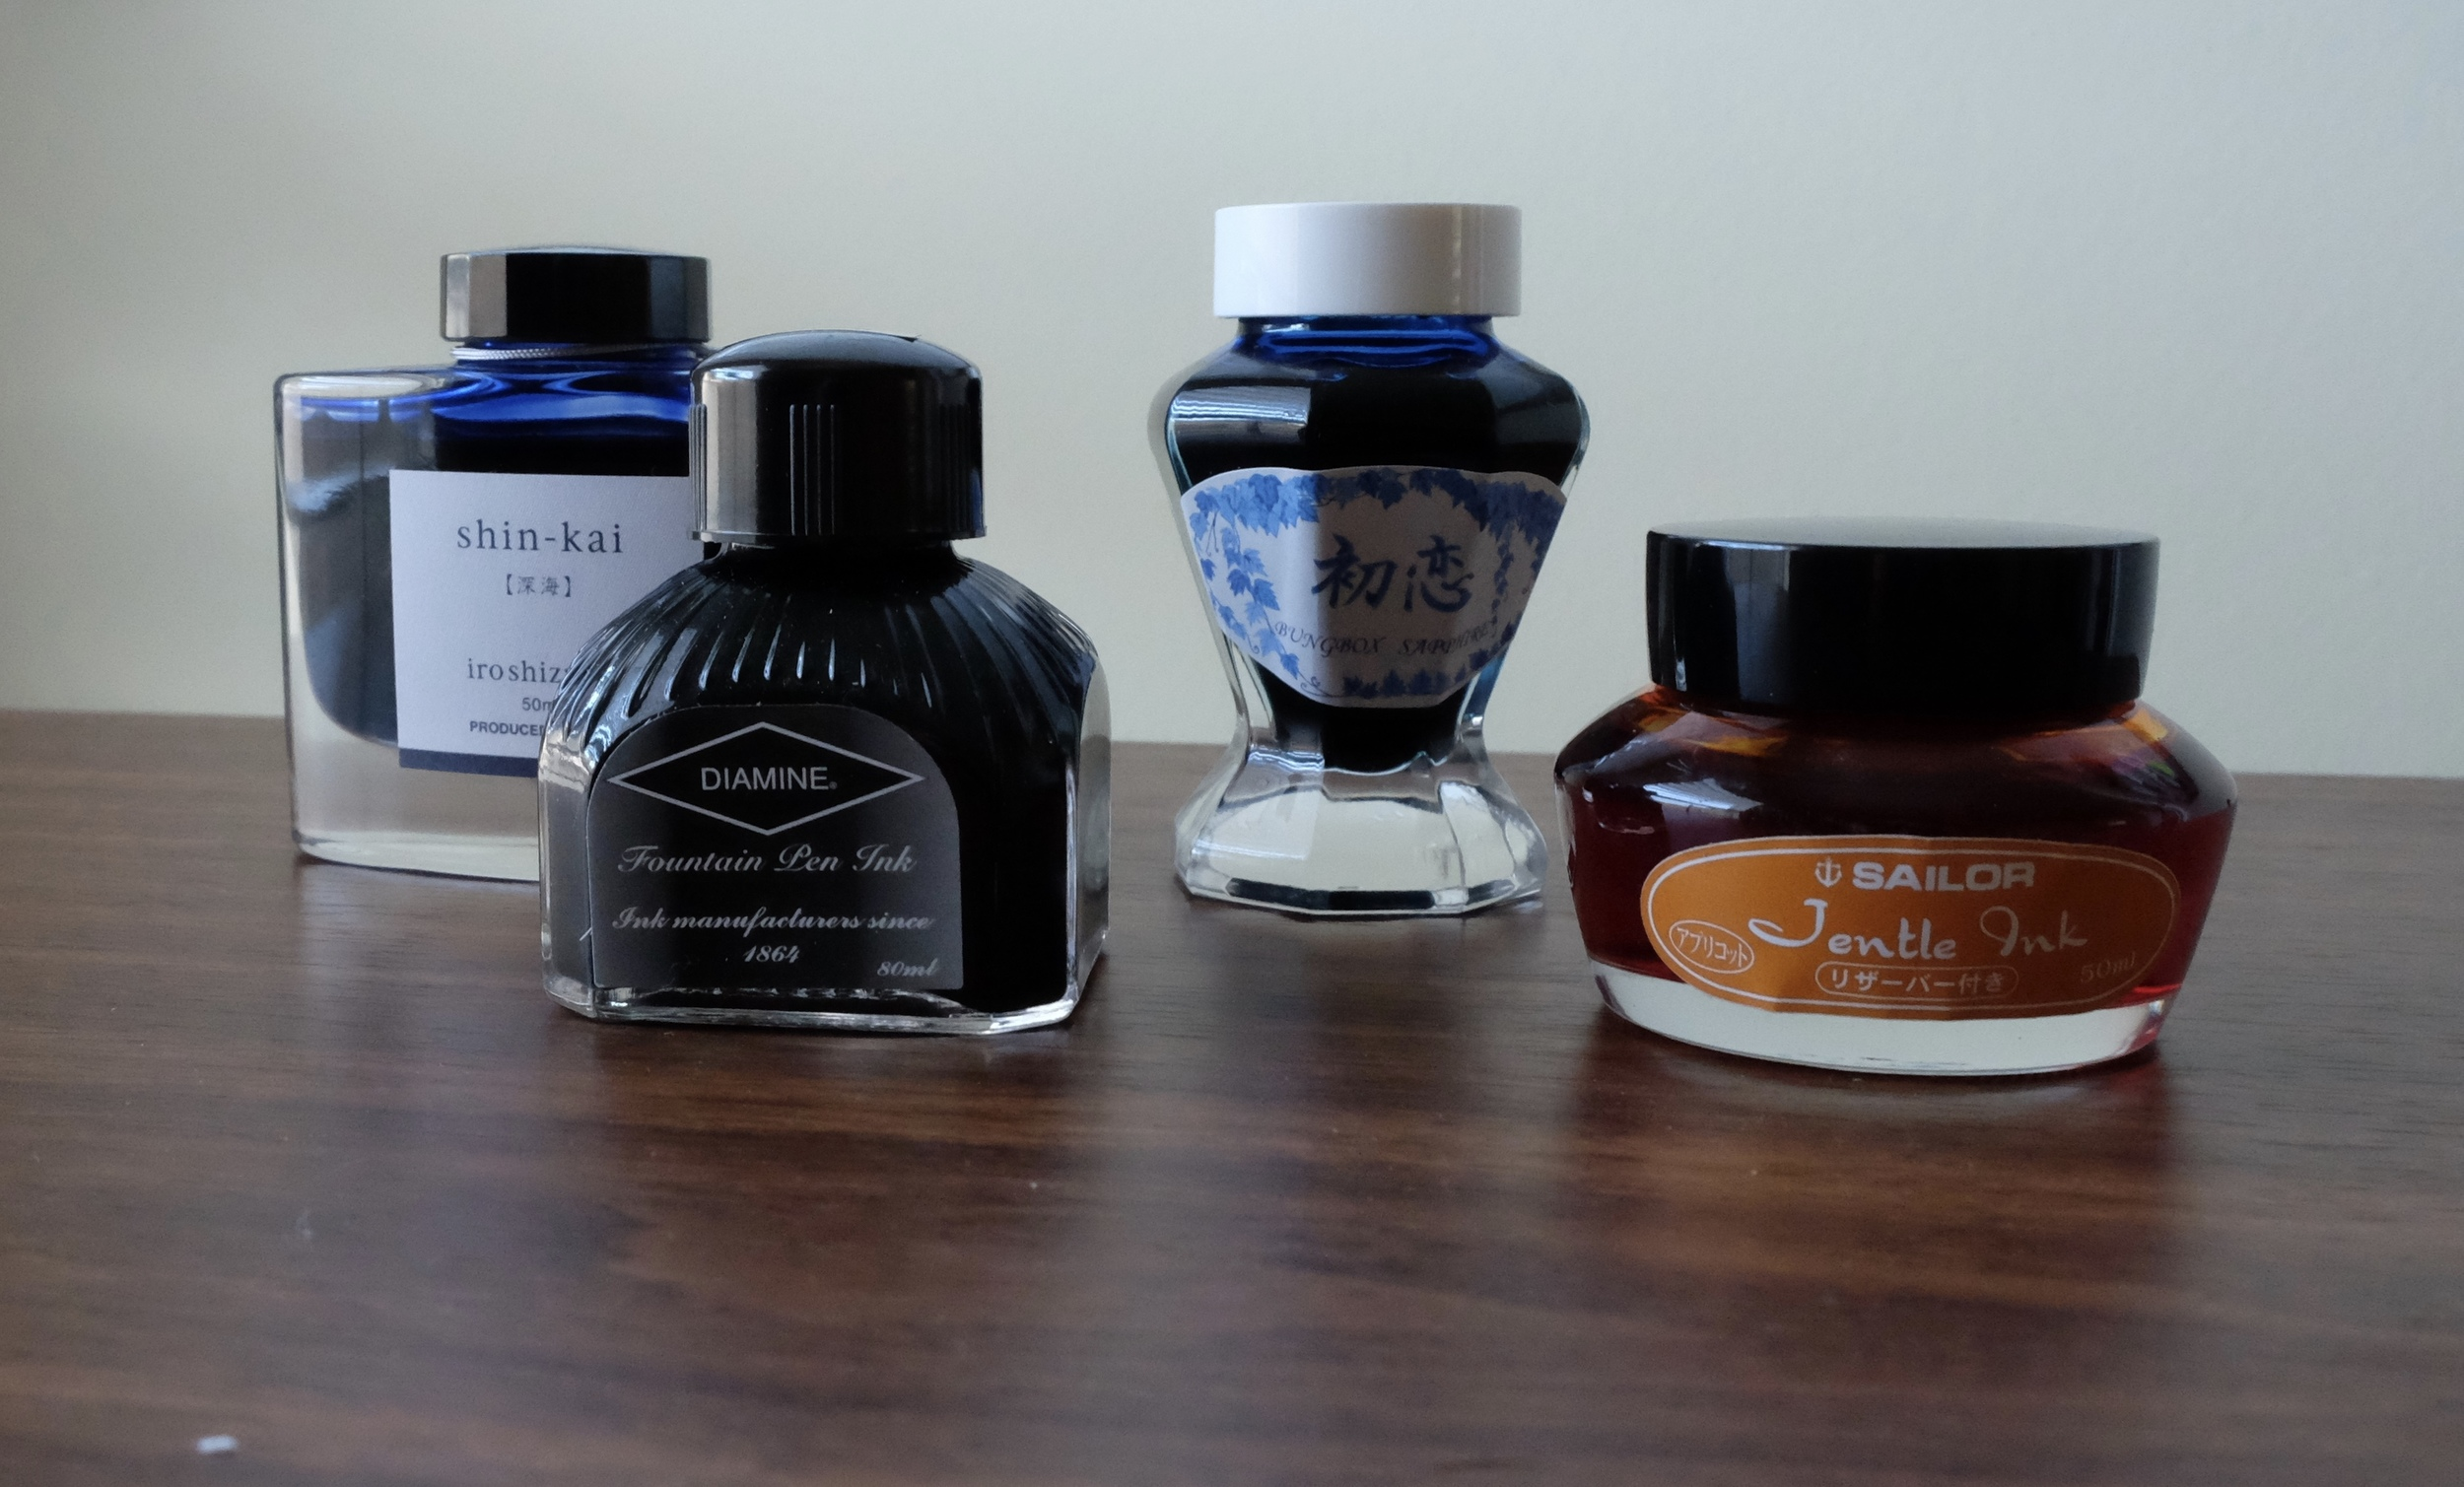 A Few Favorite Brands, from left: Pilot, Diamine, and two Sailor Variants